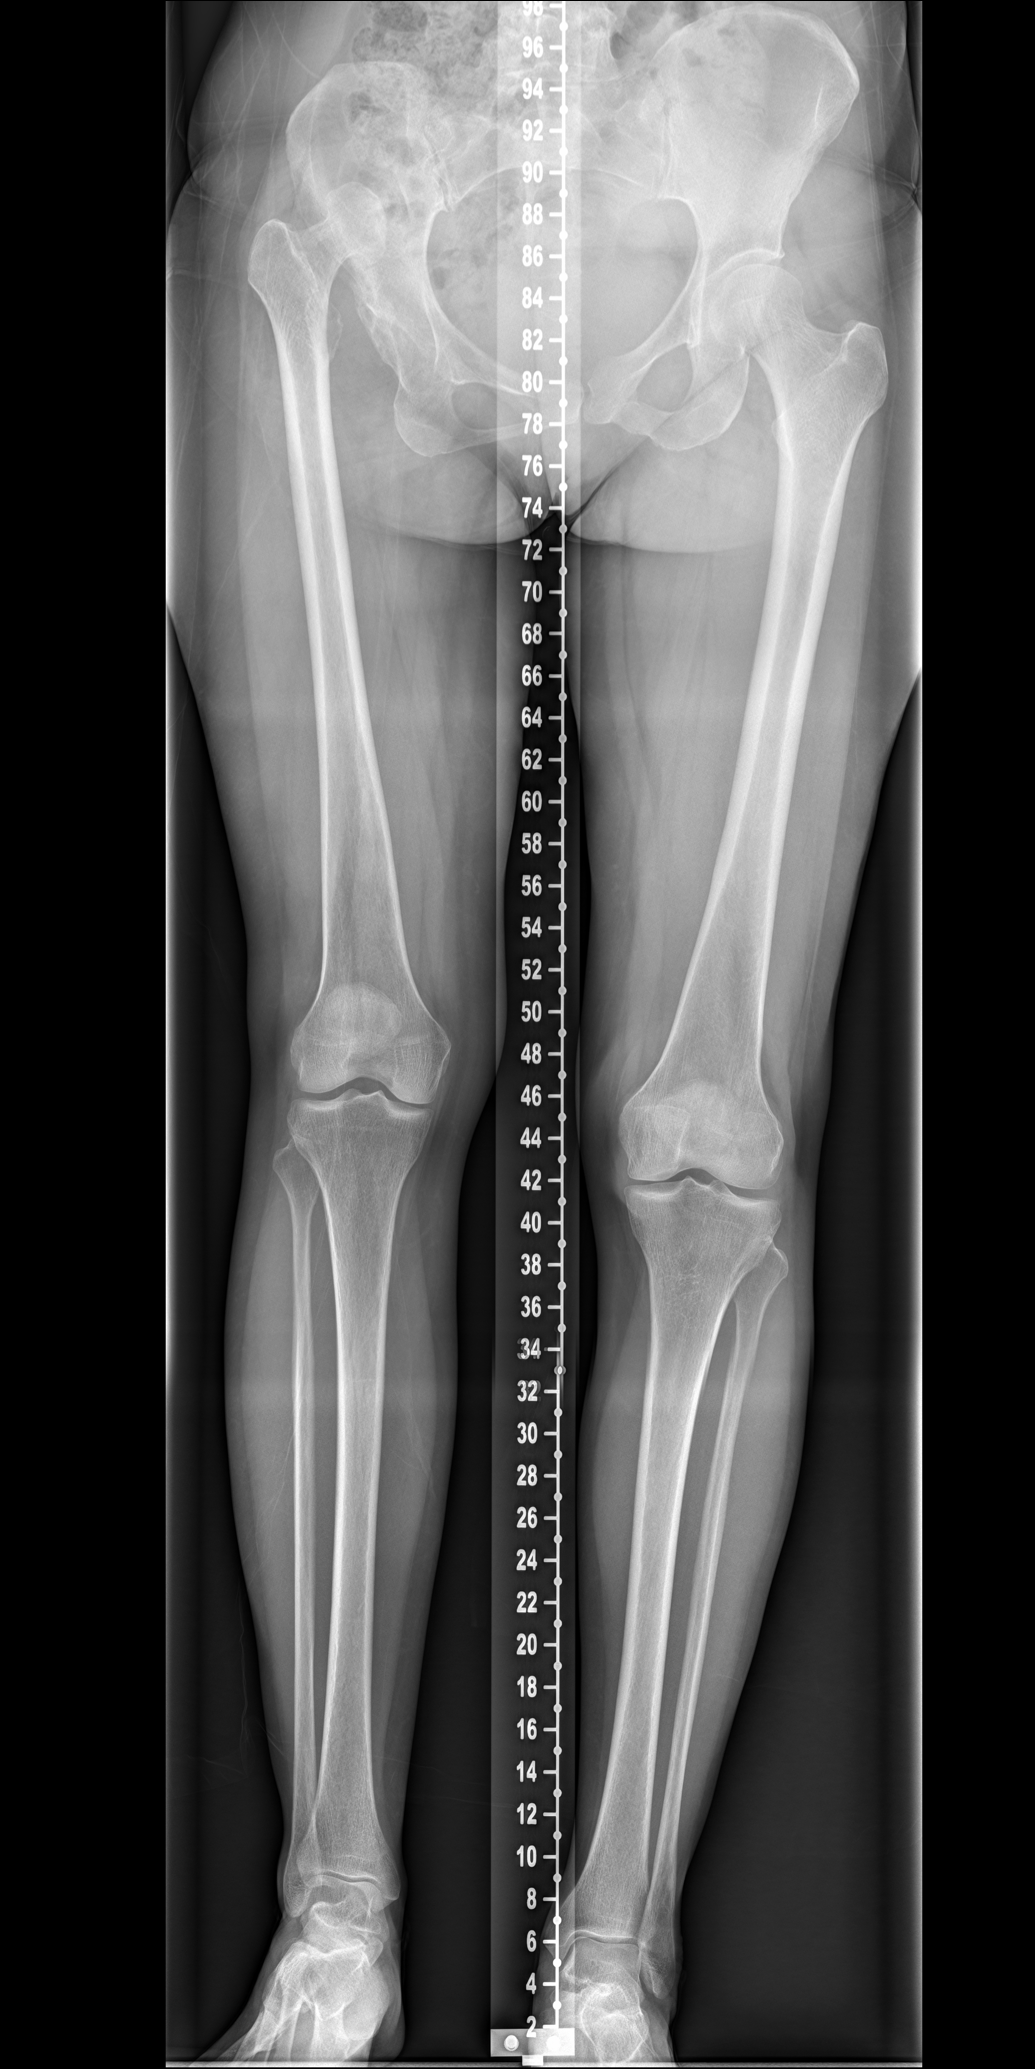 This radiograph allows the surgeon to determine the best method to attain a more symmetrical leg length.  In this case the hip centre needs to be brought equal to the other side, and will be achieved by use of a shortening femoral osteotomy.